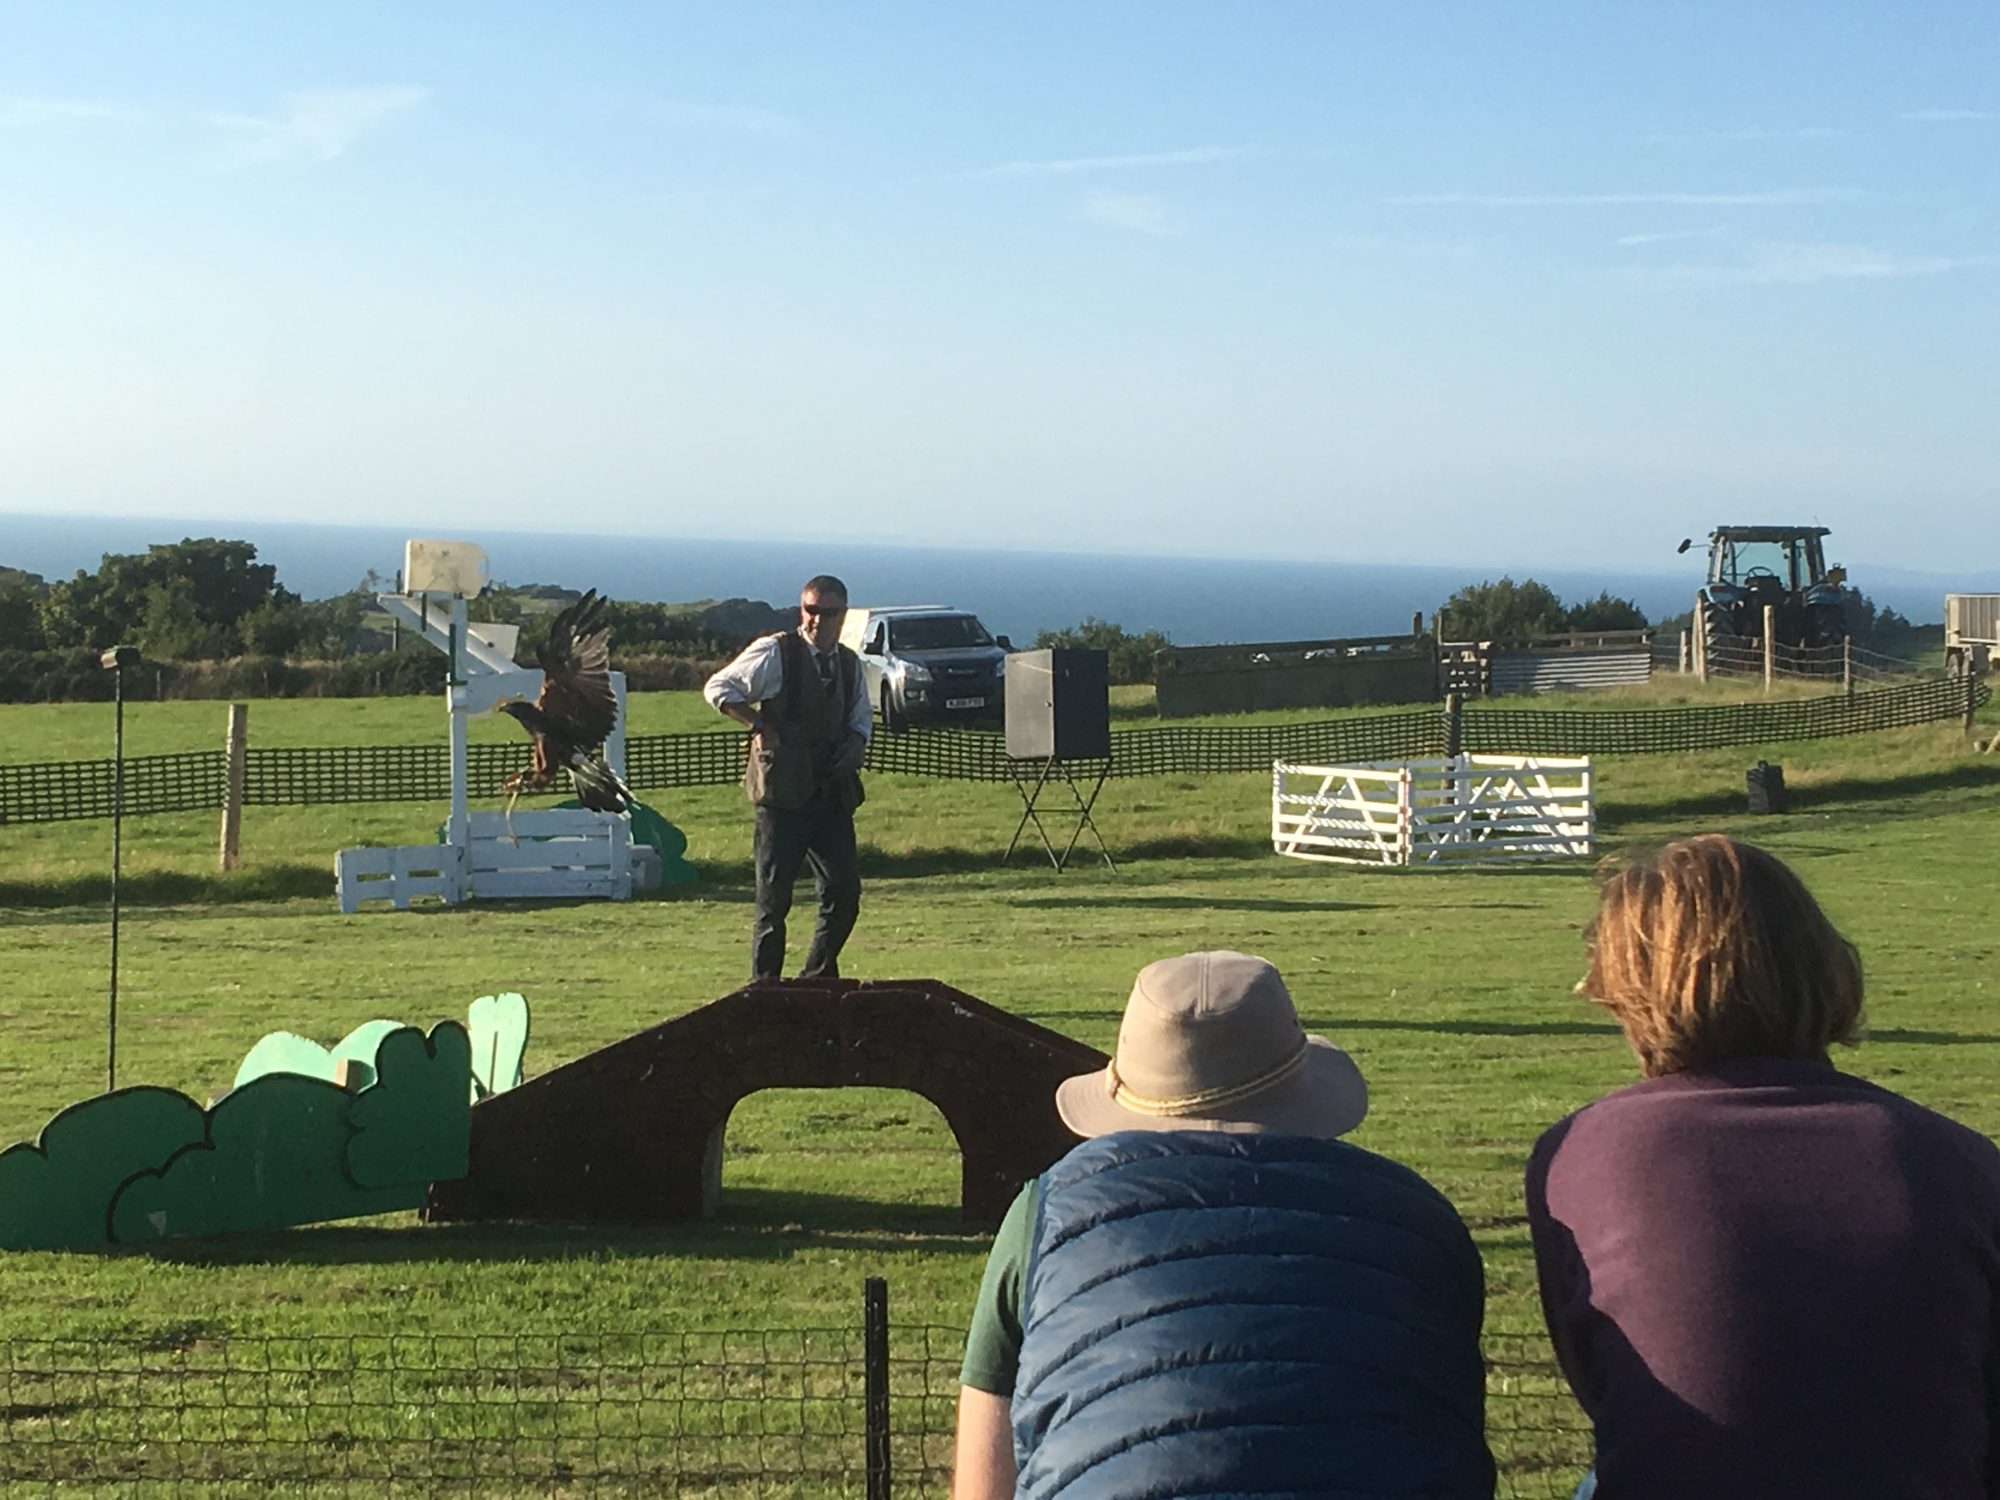 Sheepdog & Falconry display